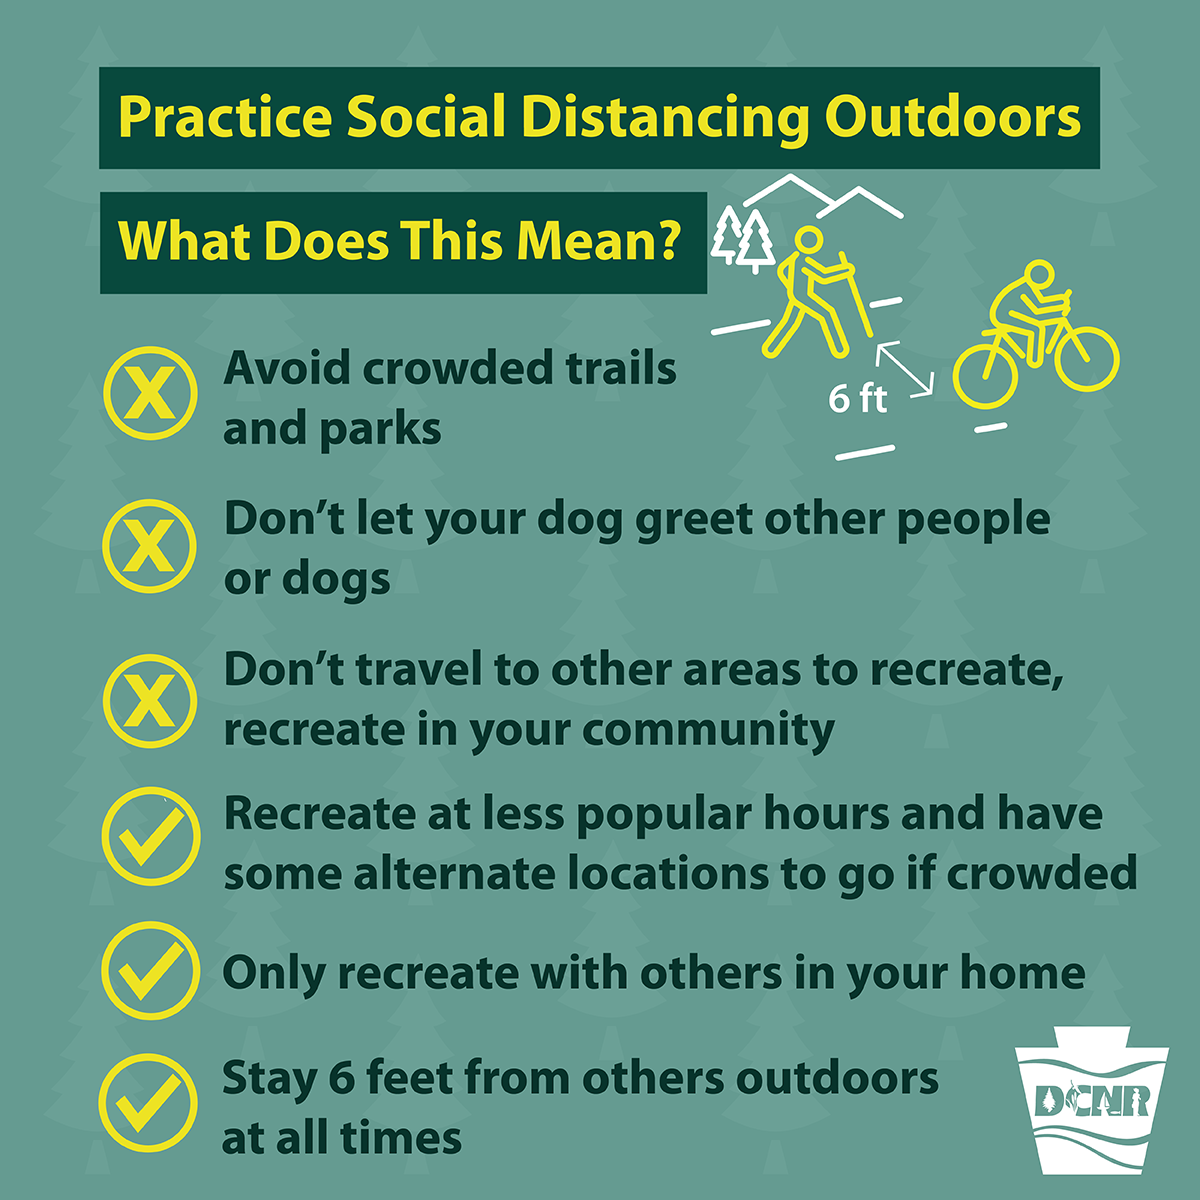 Practice Social Distancing Outdoors